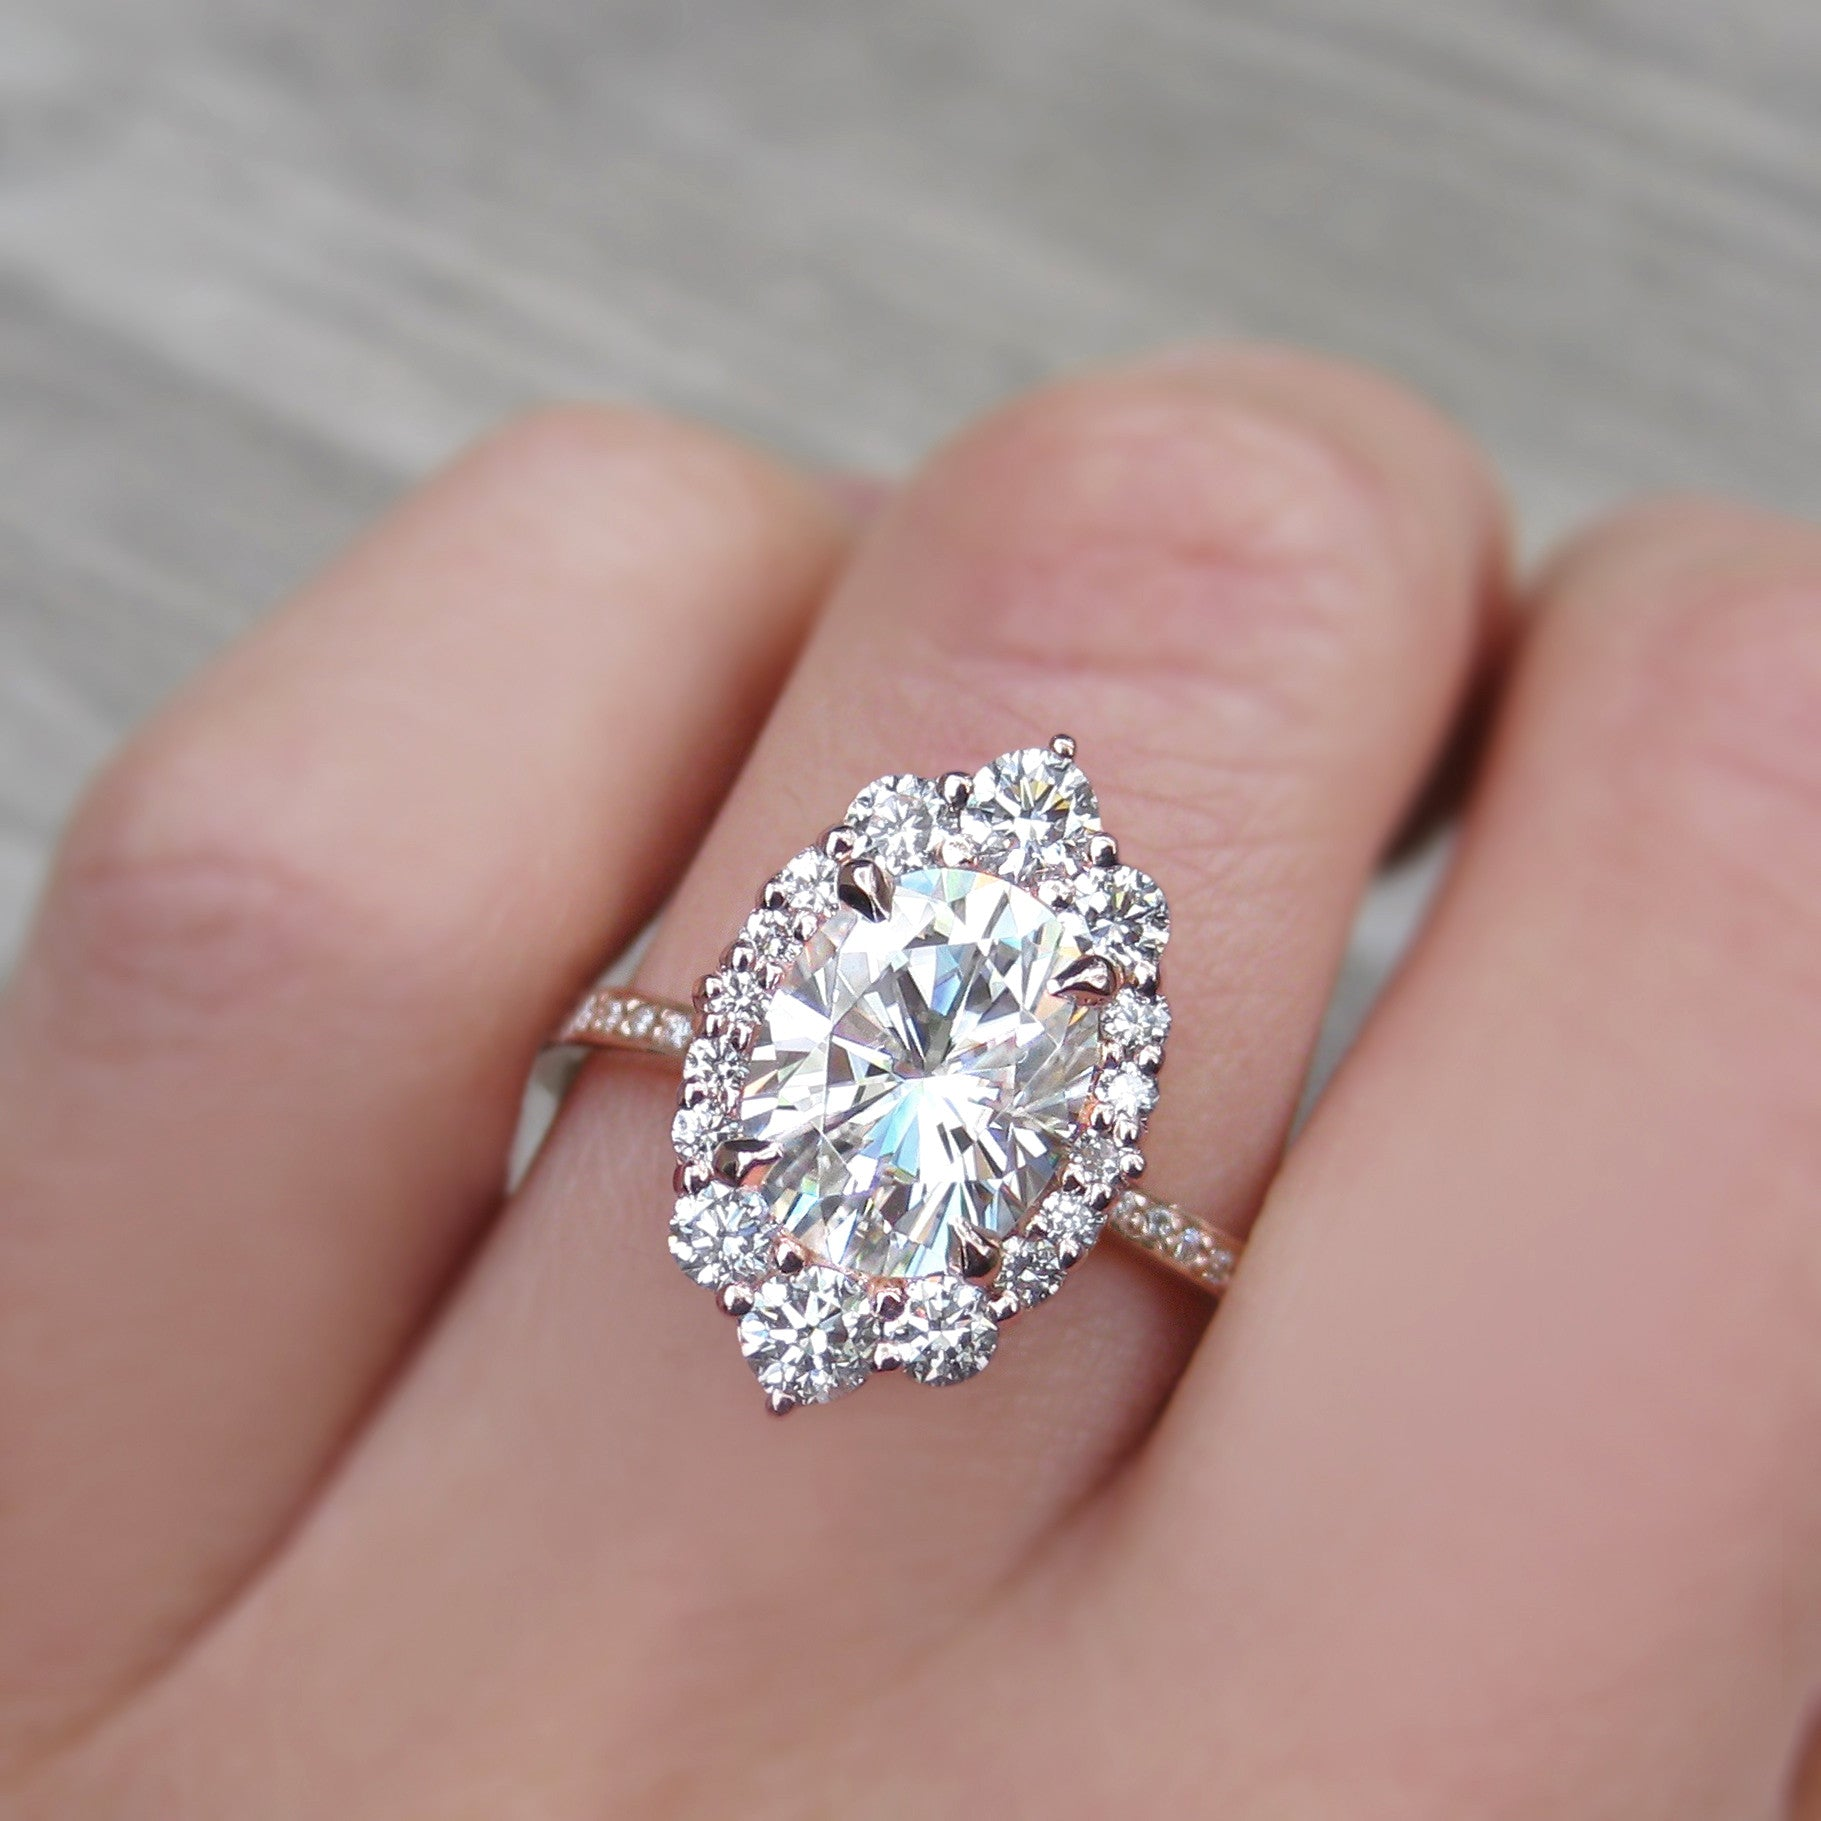 Weding Bands For Halo Engagement Rings 05 - Weding Bands For Halo Engagement Rings